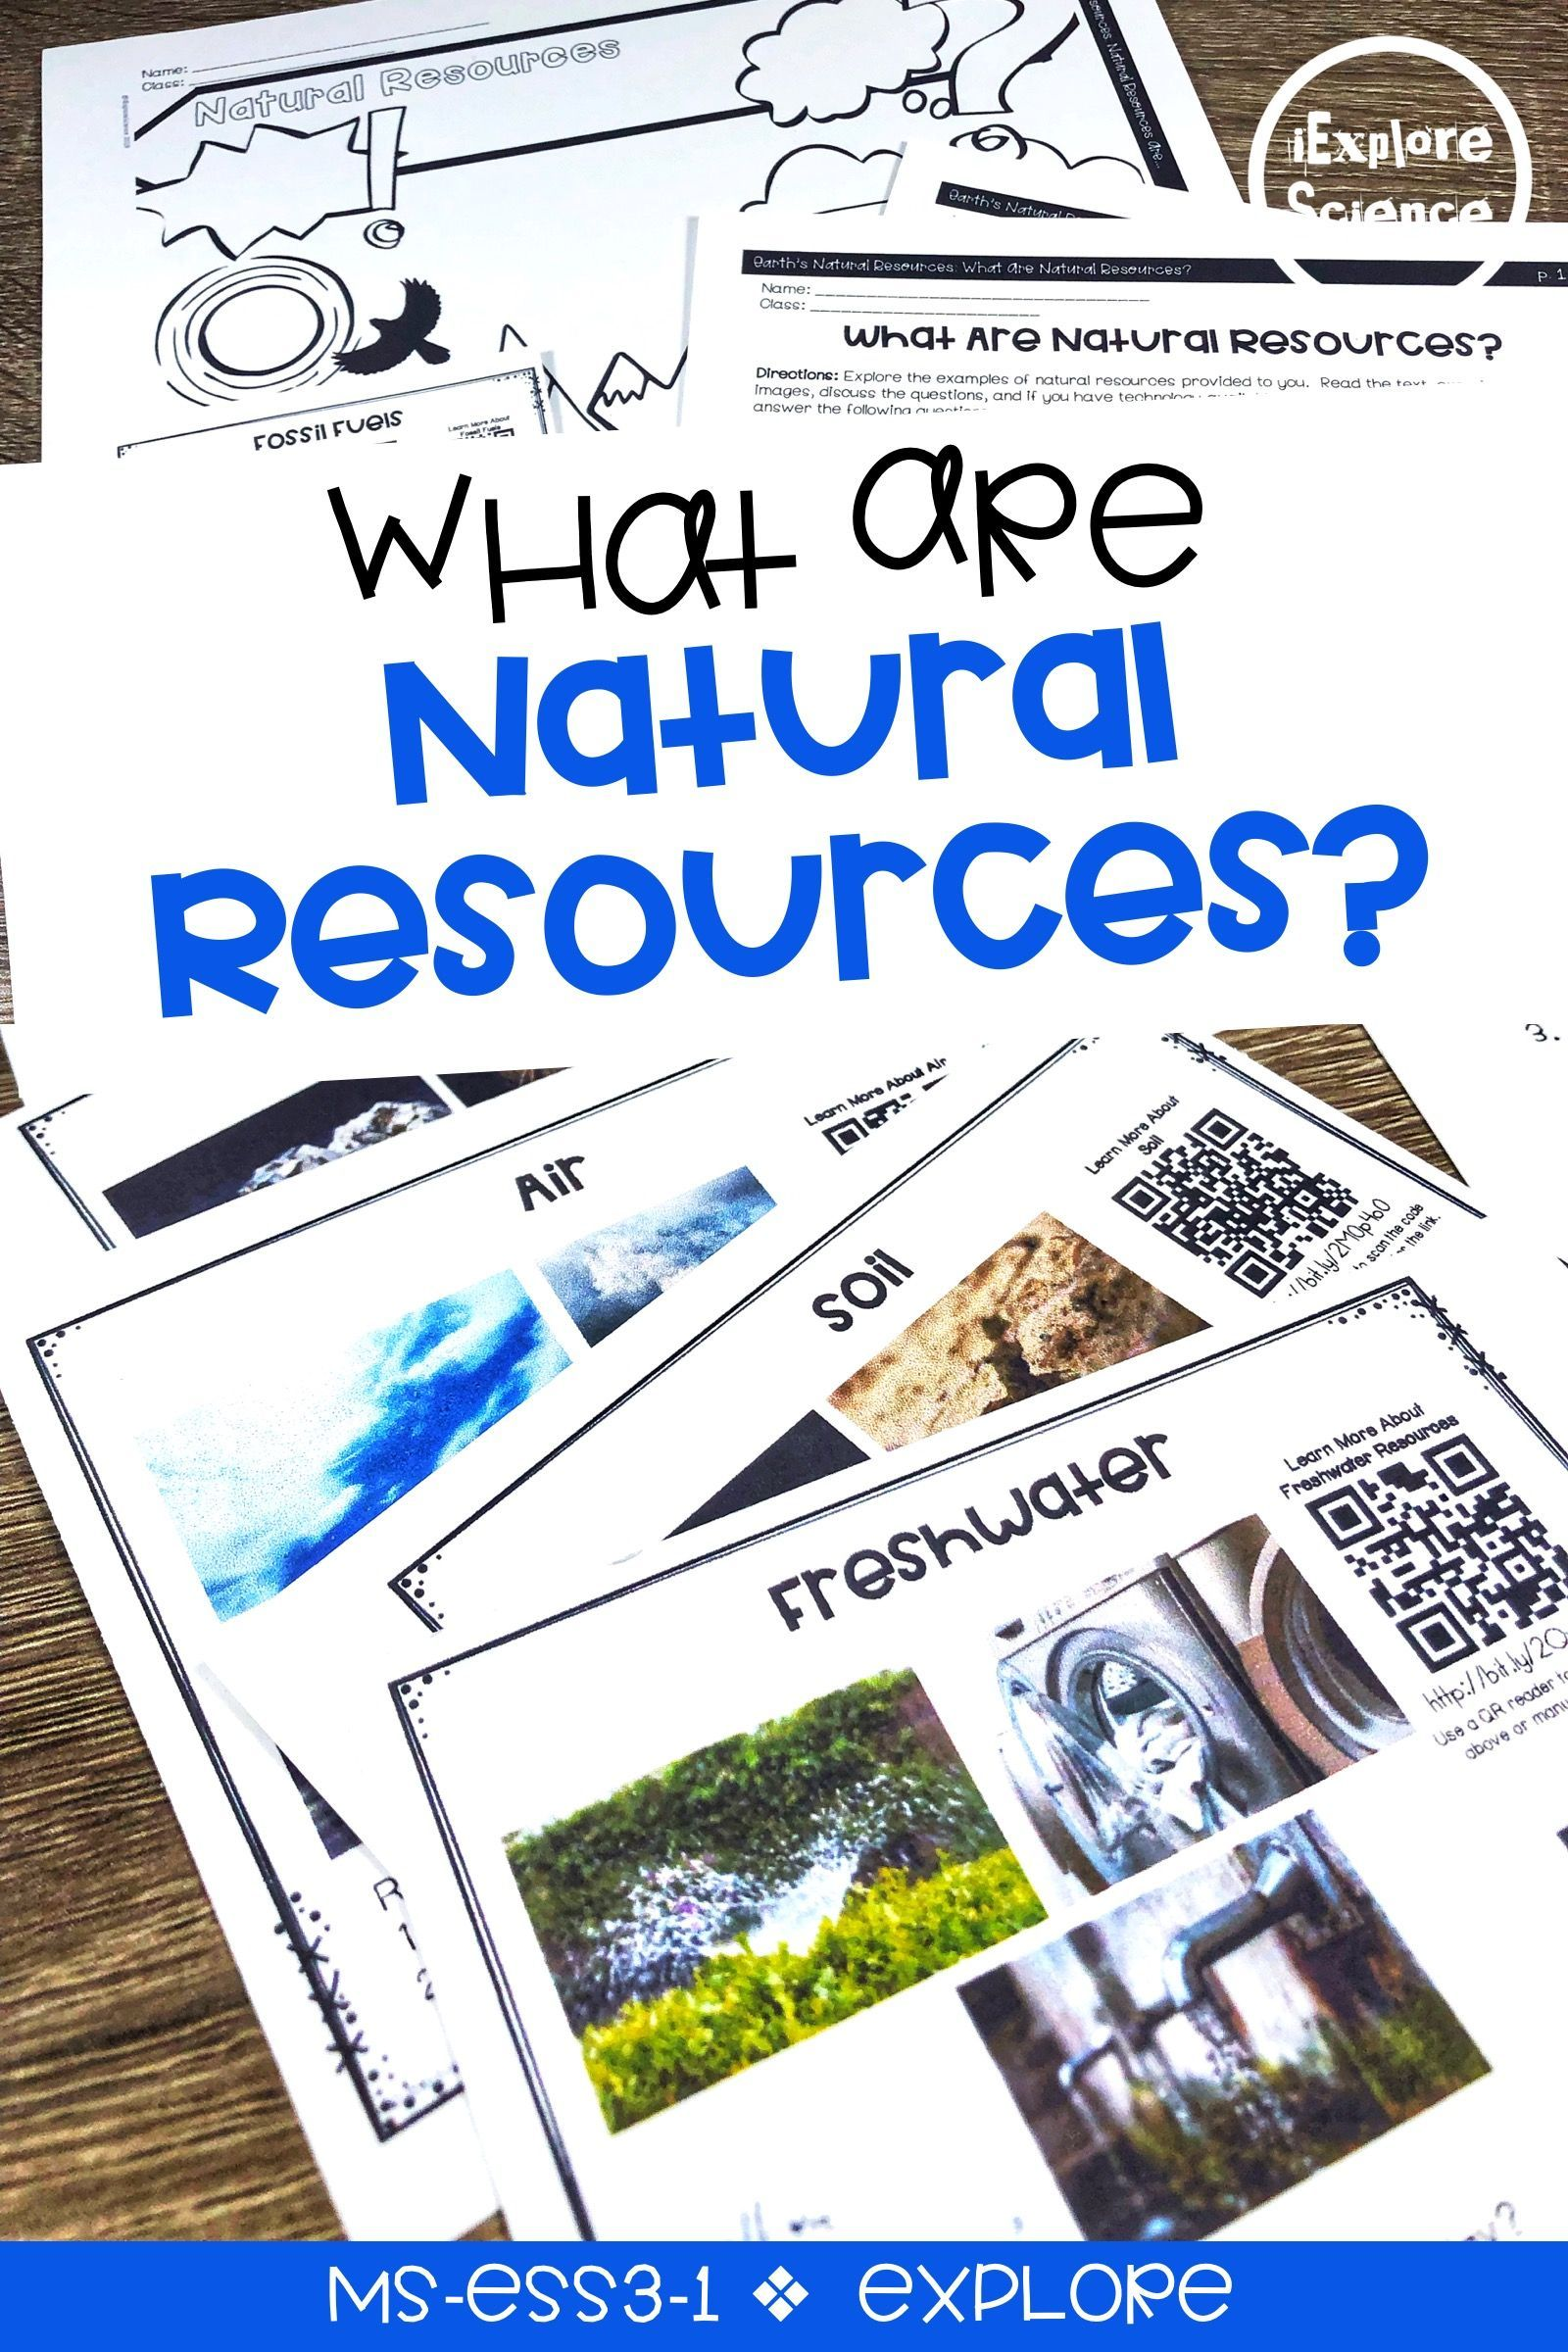 What Are Natural Resources Ms Ess3 1 5e Model Explore Explain Natural Resources Activities Earth And Space Science Teaching Vocabulary